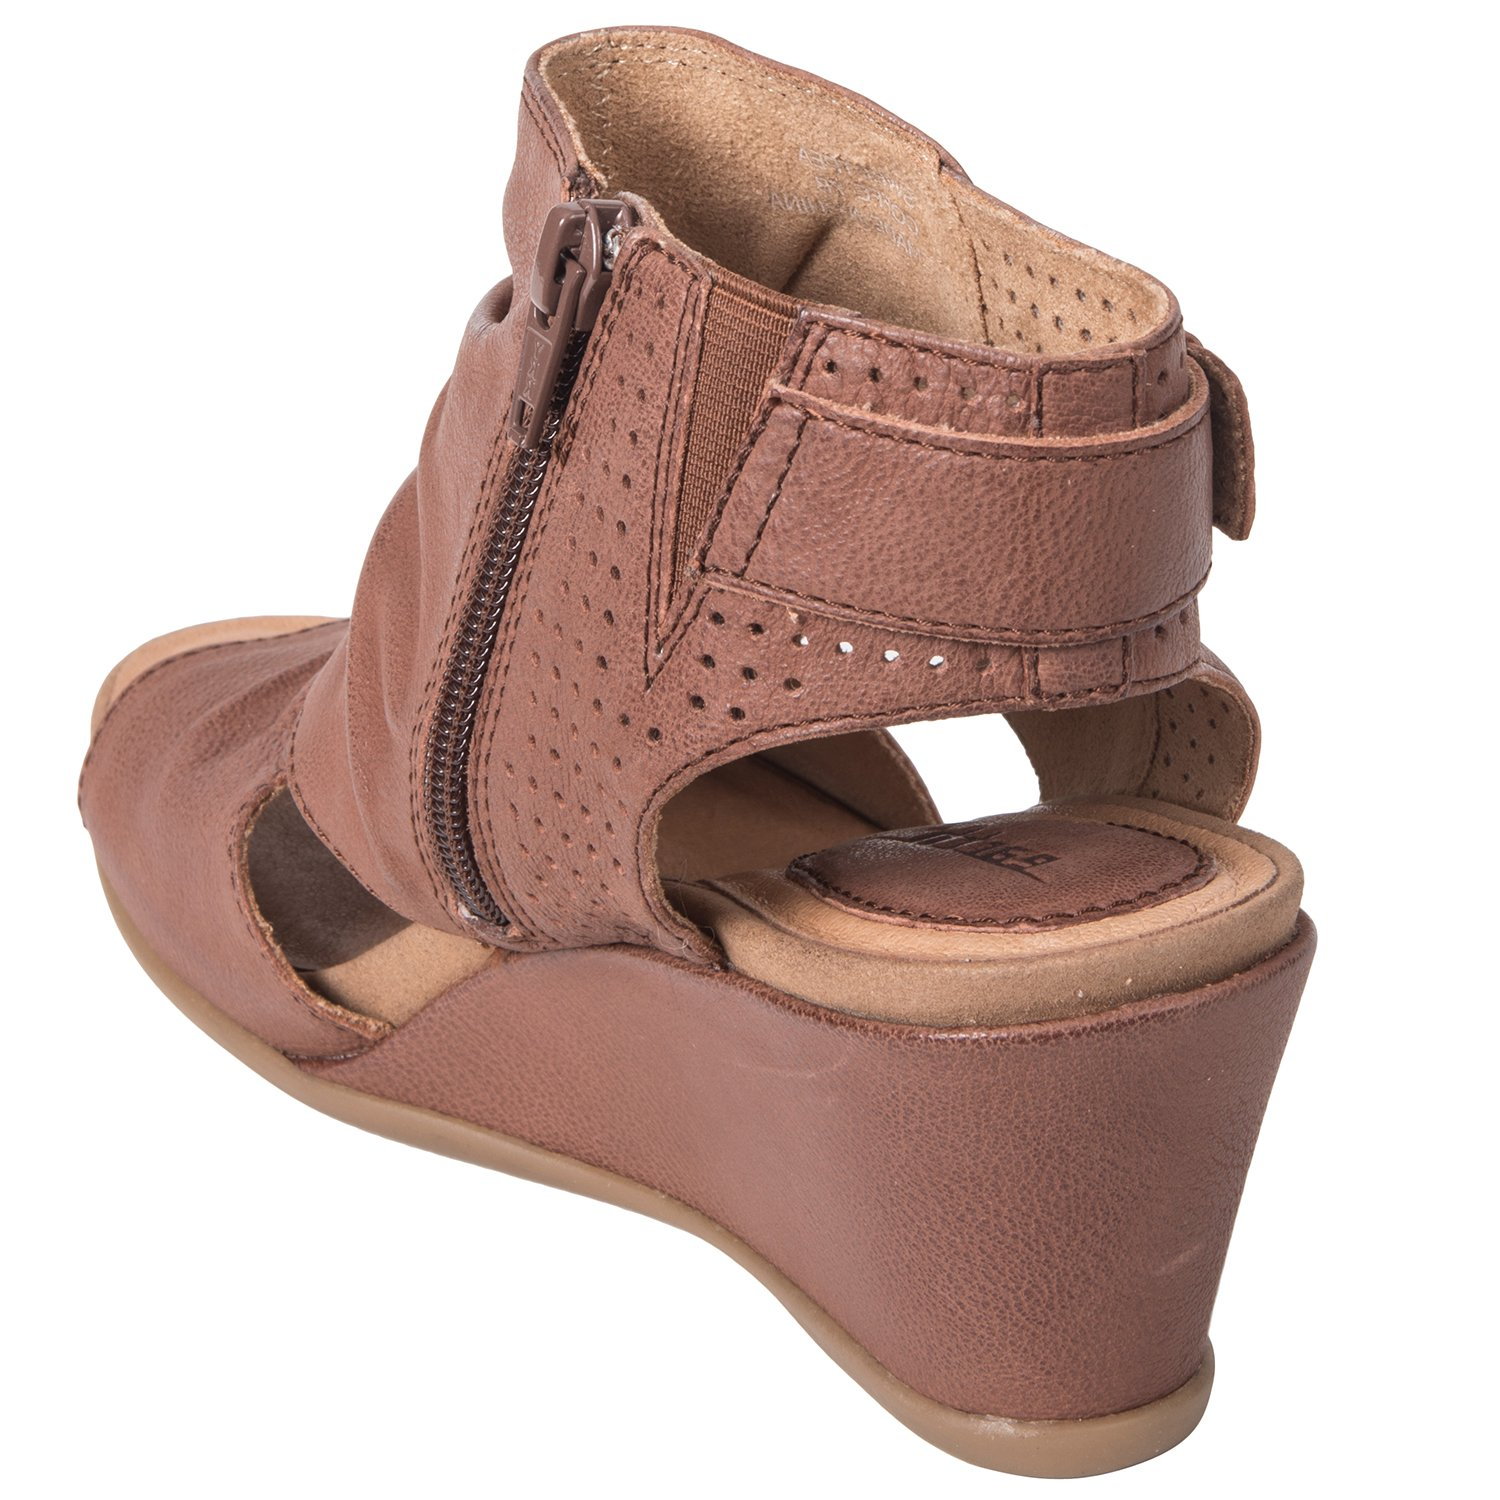 Kalso Earth scarpe donna Sweetpea Leather Open Toe Casual Casual Casual Ankle Strap Sandals | Online Shop  07d41e